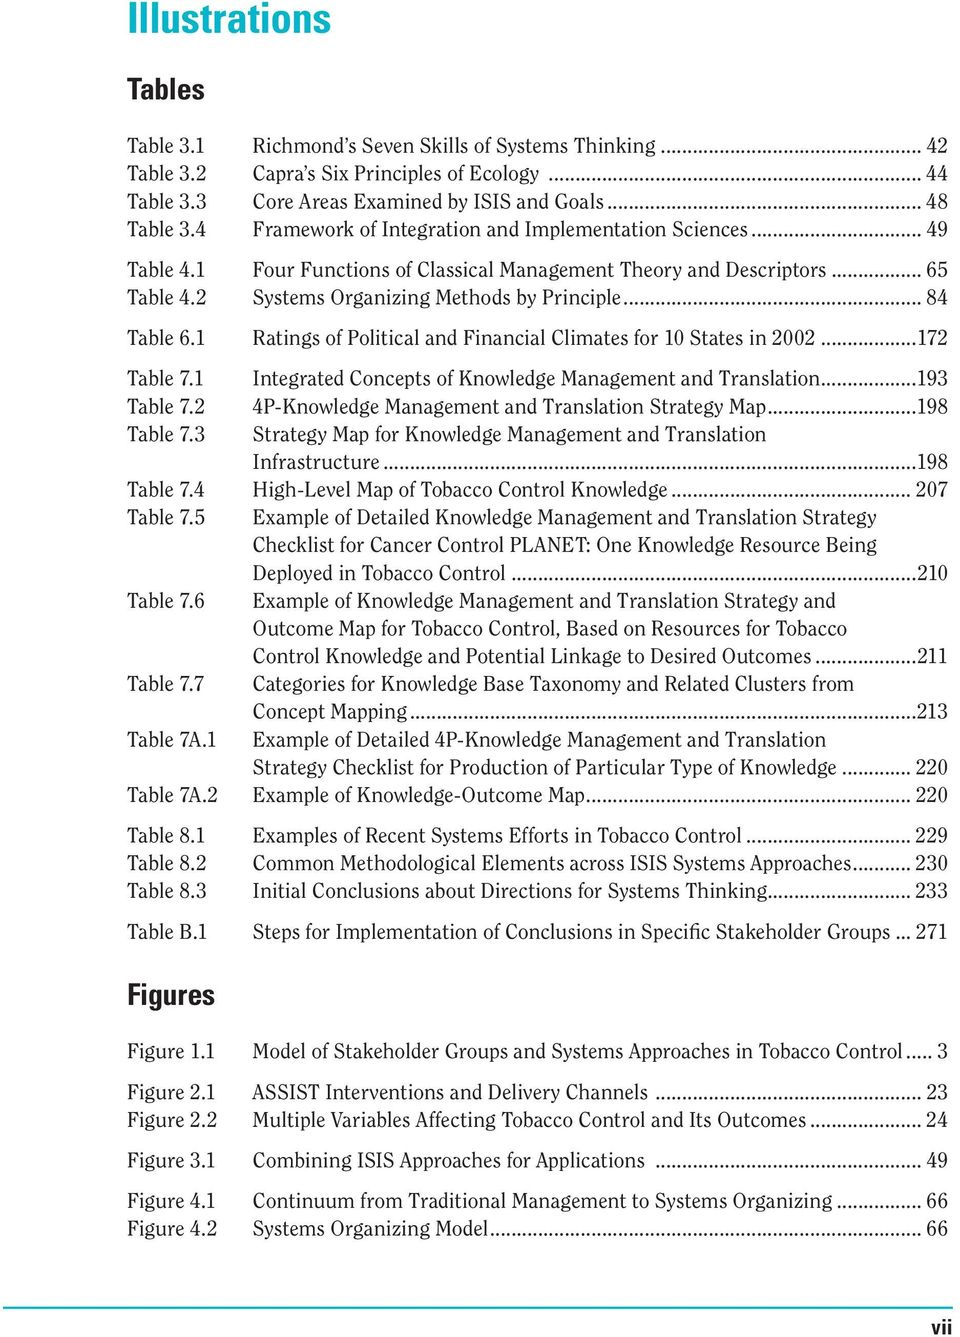 .. 84 Table 6.1 Ratings of Political and Financial Climates for 10 States in 2002...172 Table 7.1 Integrated Concepts of Knowledge Management and Translation...193 Table 7.